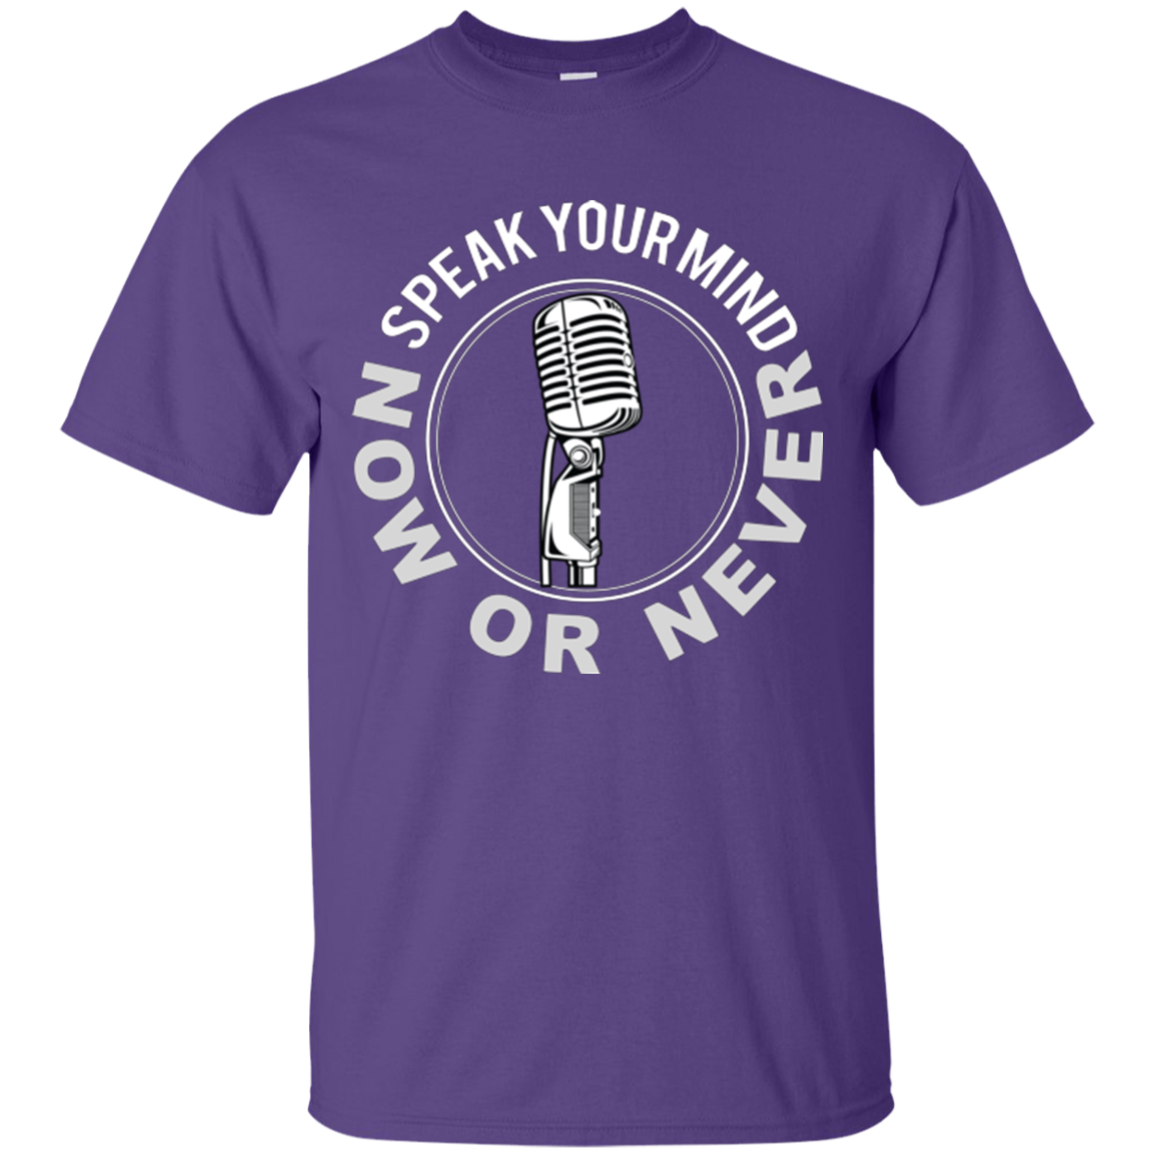 SPEAK YOUR MIND T-SHIRT